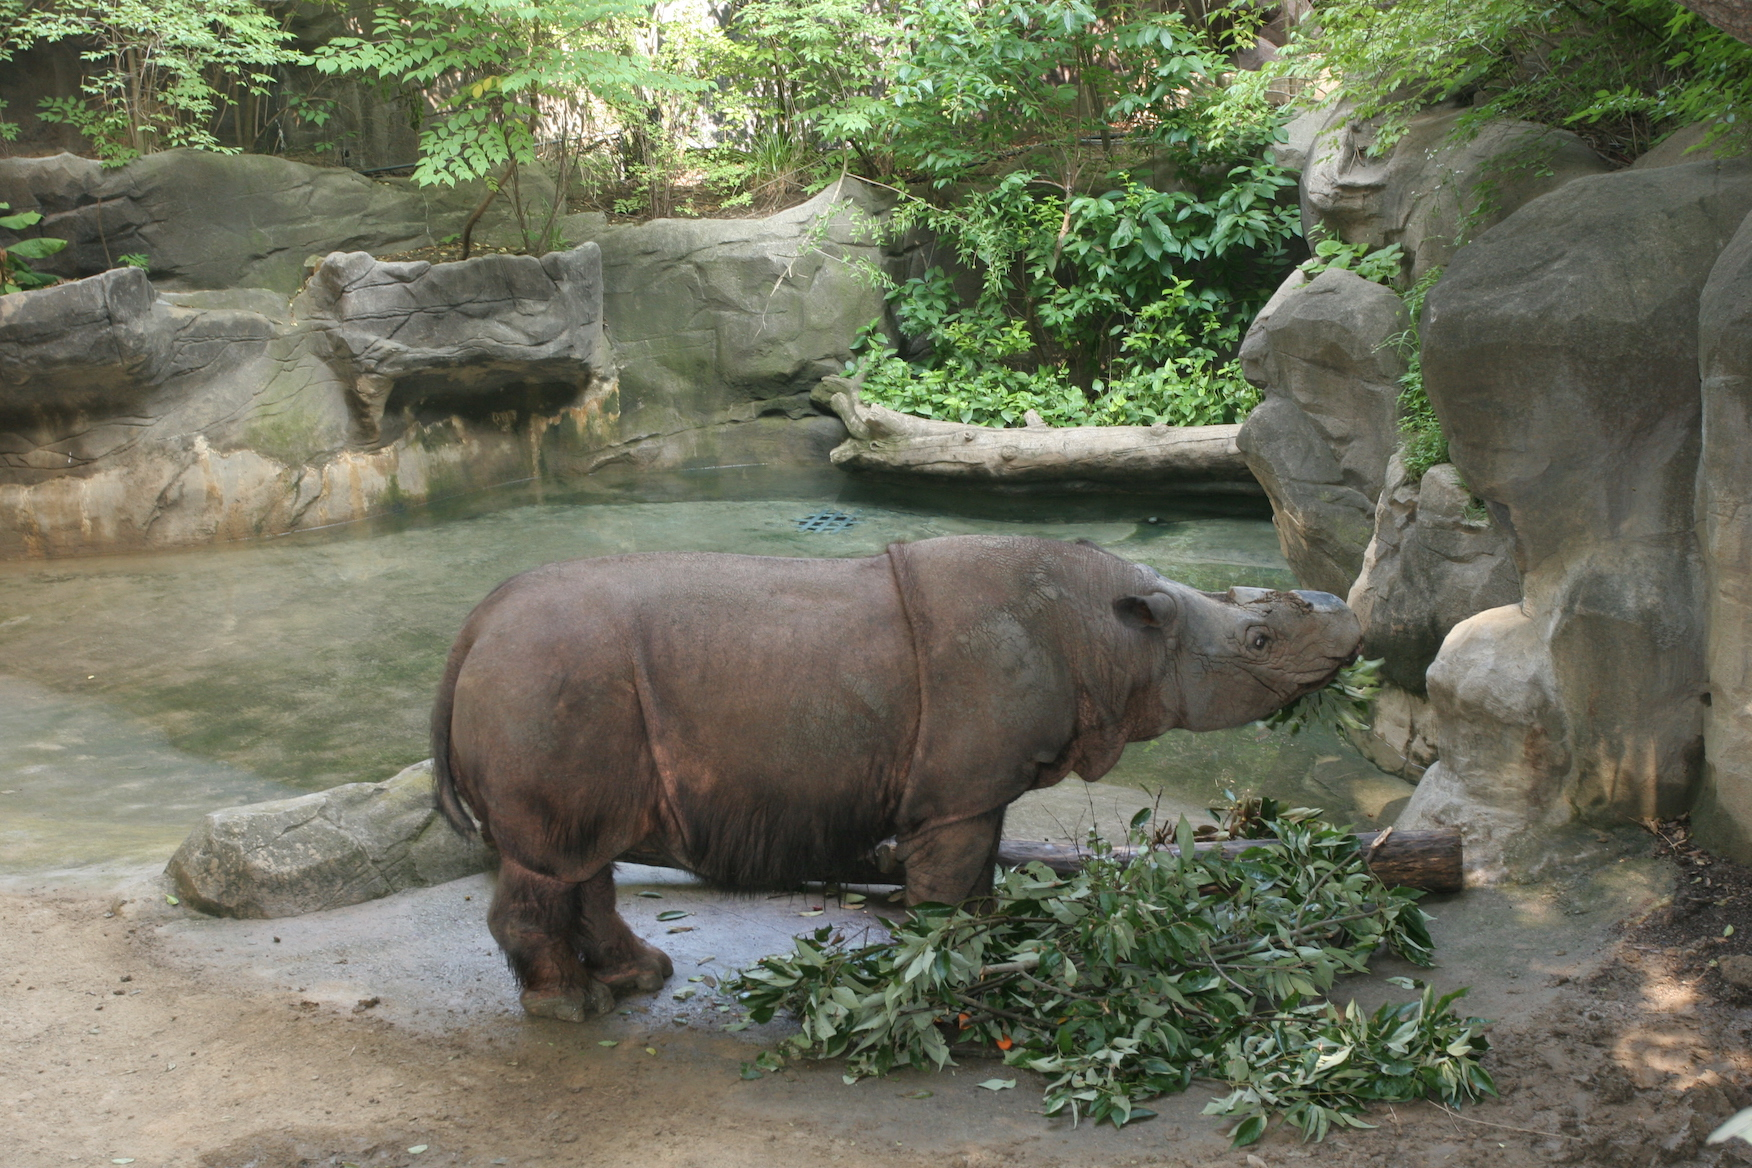 There were only an estimated 200 Sumatran rhinoceroses living in the wild by 2011, making them one of the most endangered species on Earth.